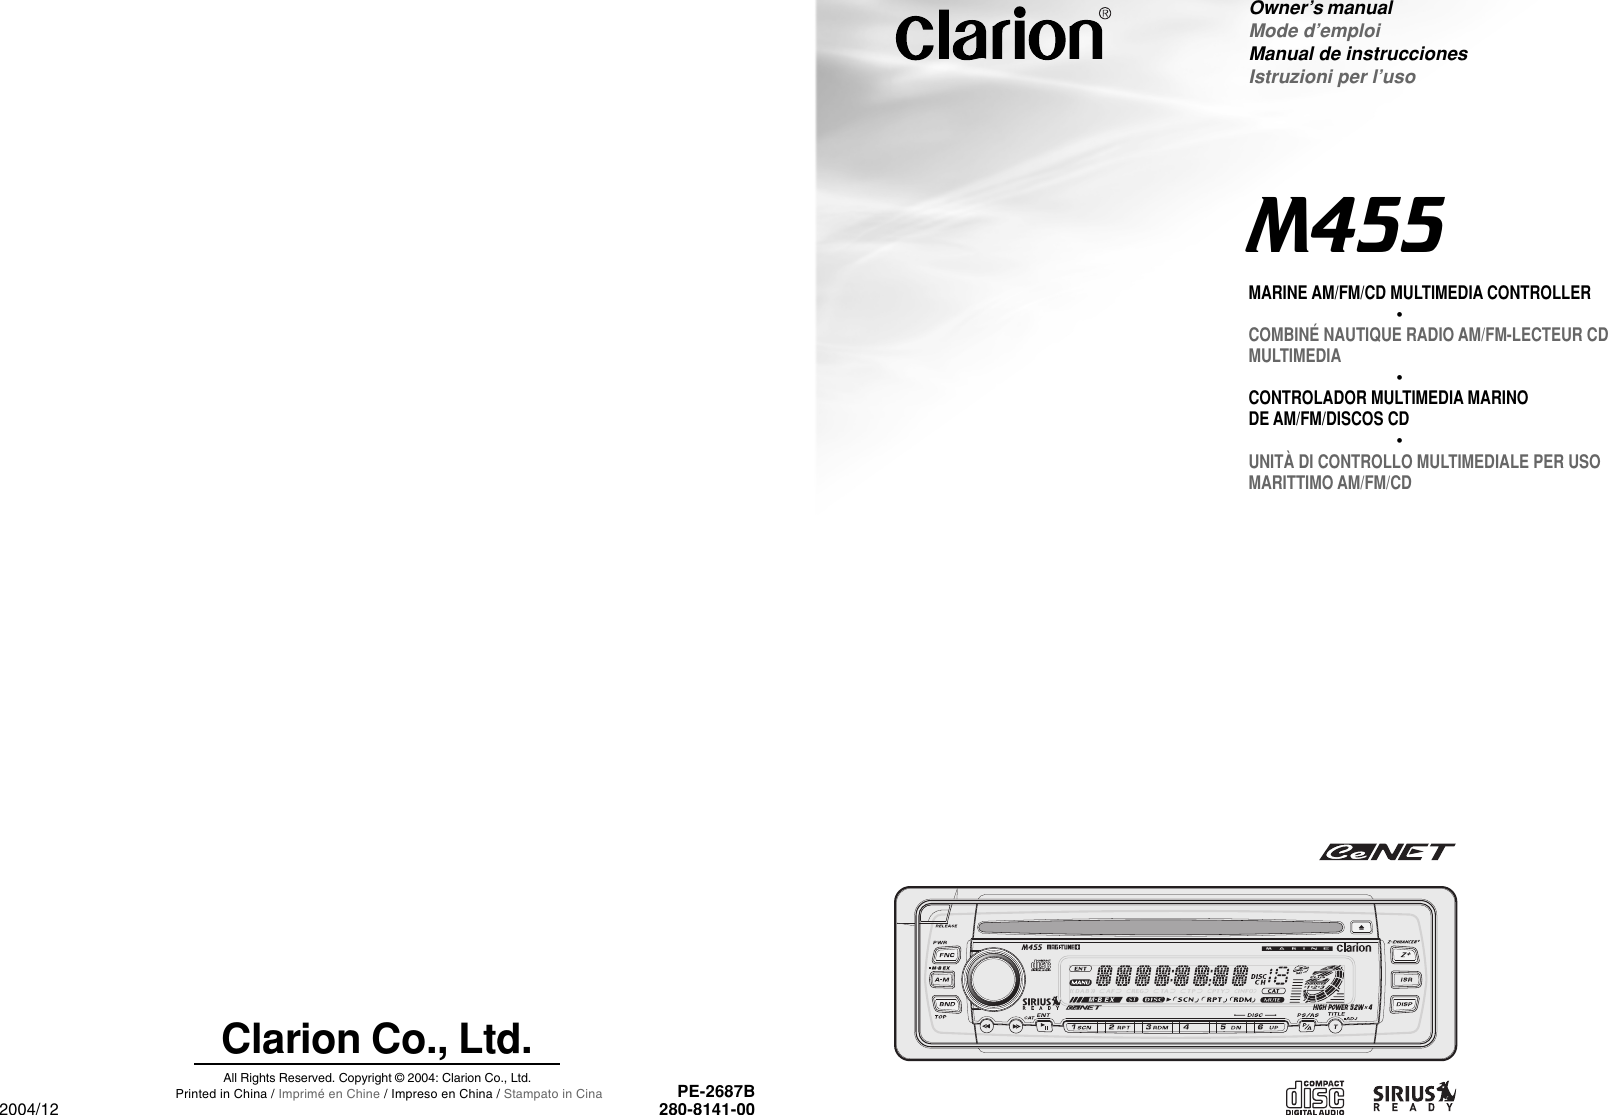 Clarion M455 Wiring Diagram Trusted Diagrams Aiwa Stereo Users Manual 280pe2687ba 00 0 Audio Control